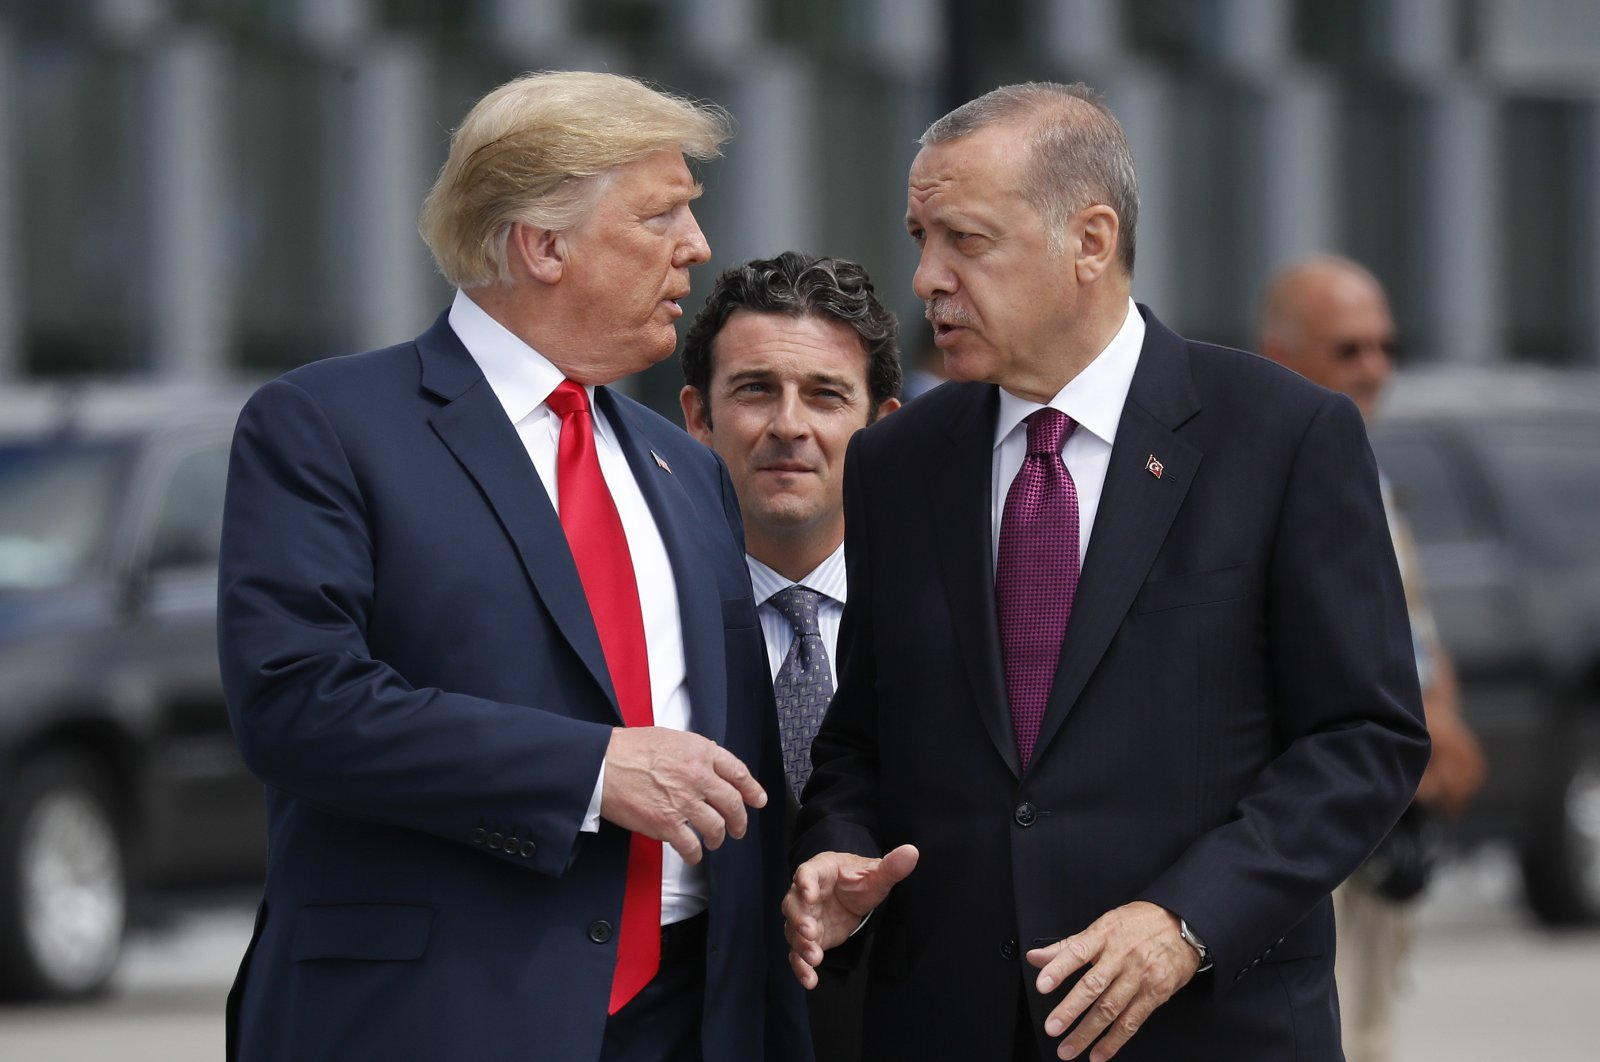 U.S. President Donald Trump (L) talks with President Recep Tayyip Erdoğan as they arrive together for a family photo at a summit of heads of state and government at NATO headquarters in Brussels, July 11, 2018. (AP Photo)